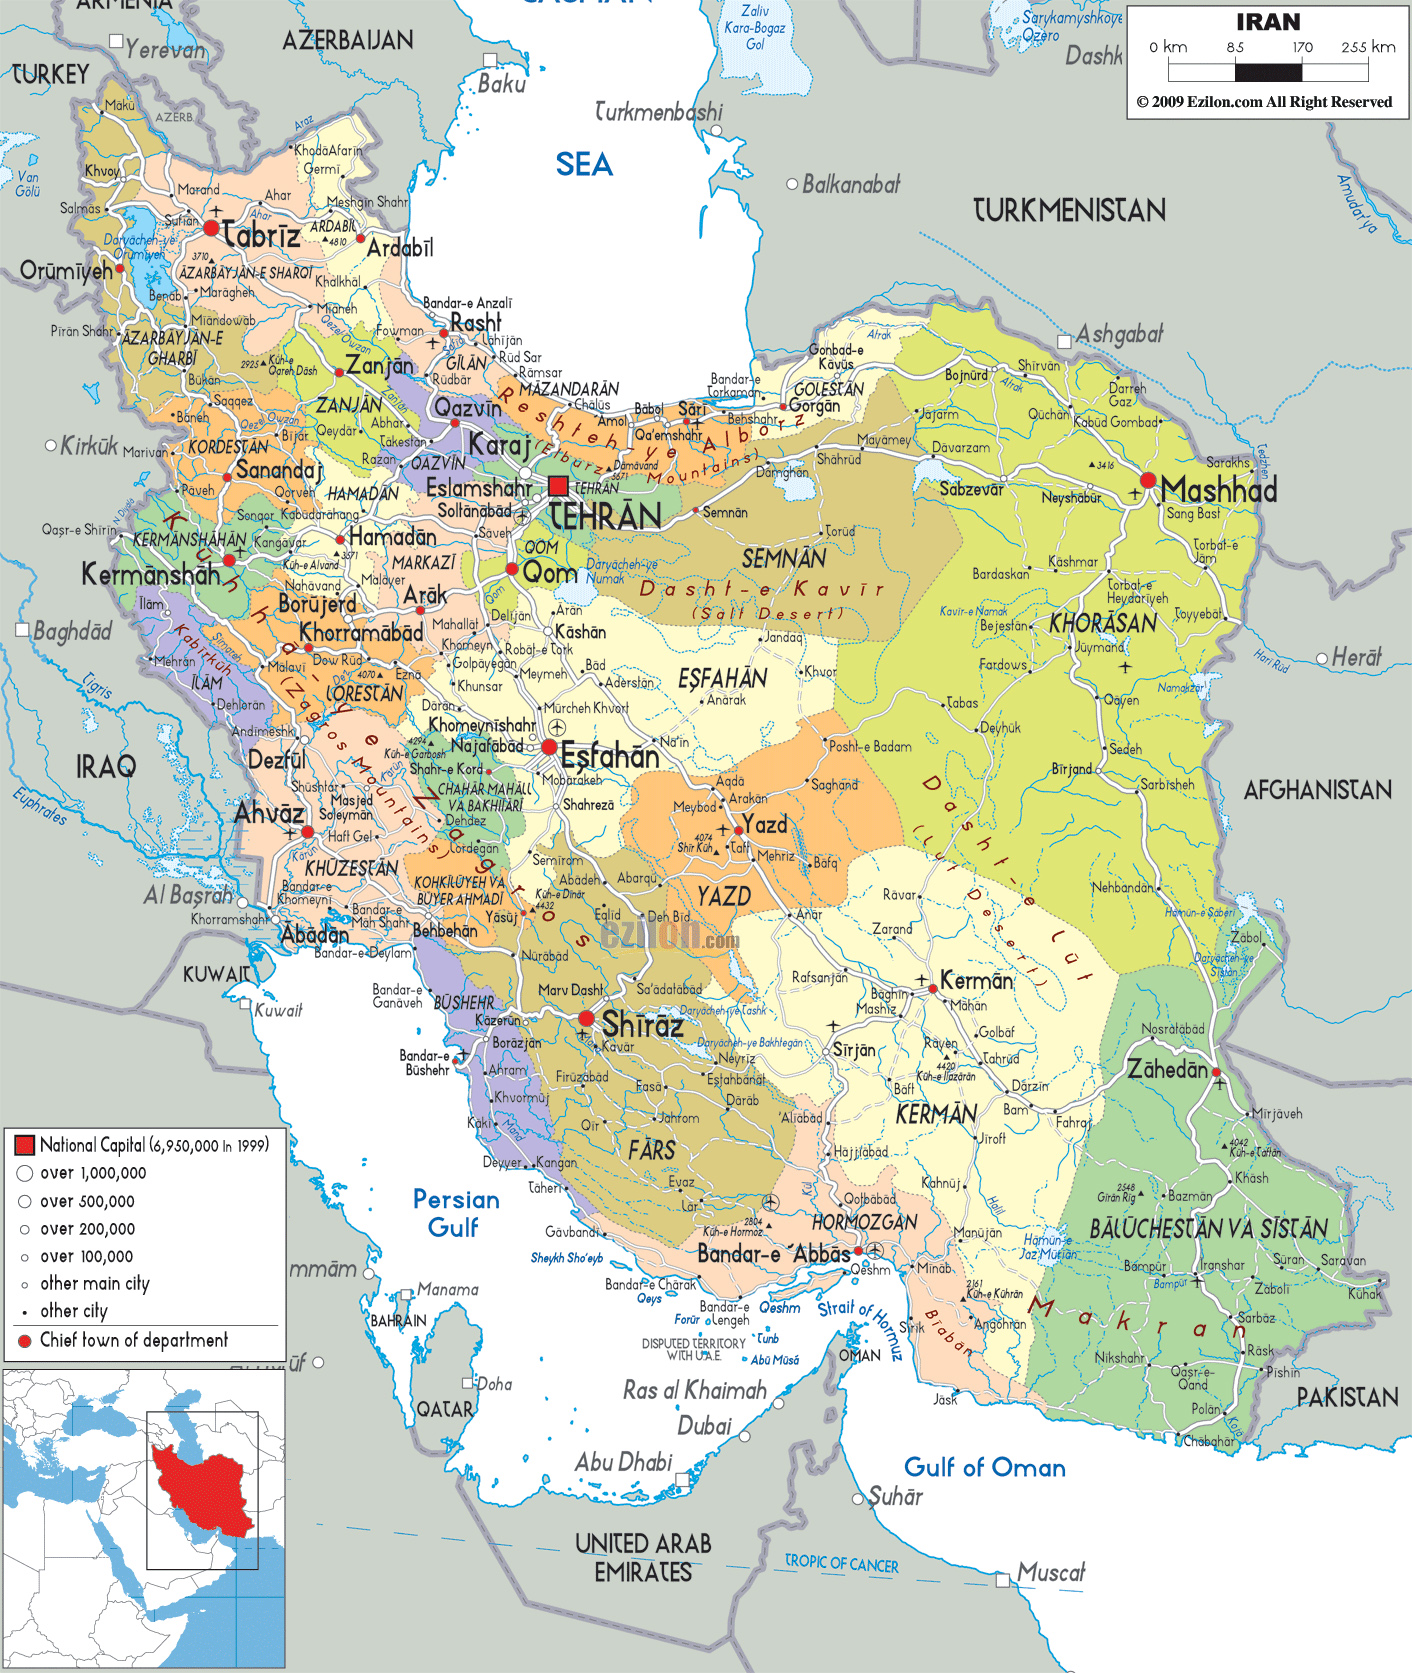 Map Australia 4074.Detailed Political And Administrative Map Of Iran With All Cities